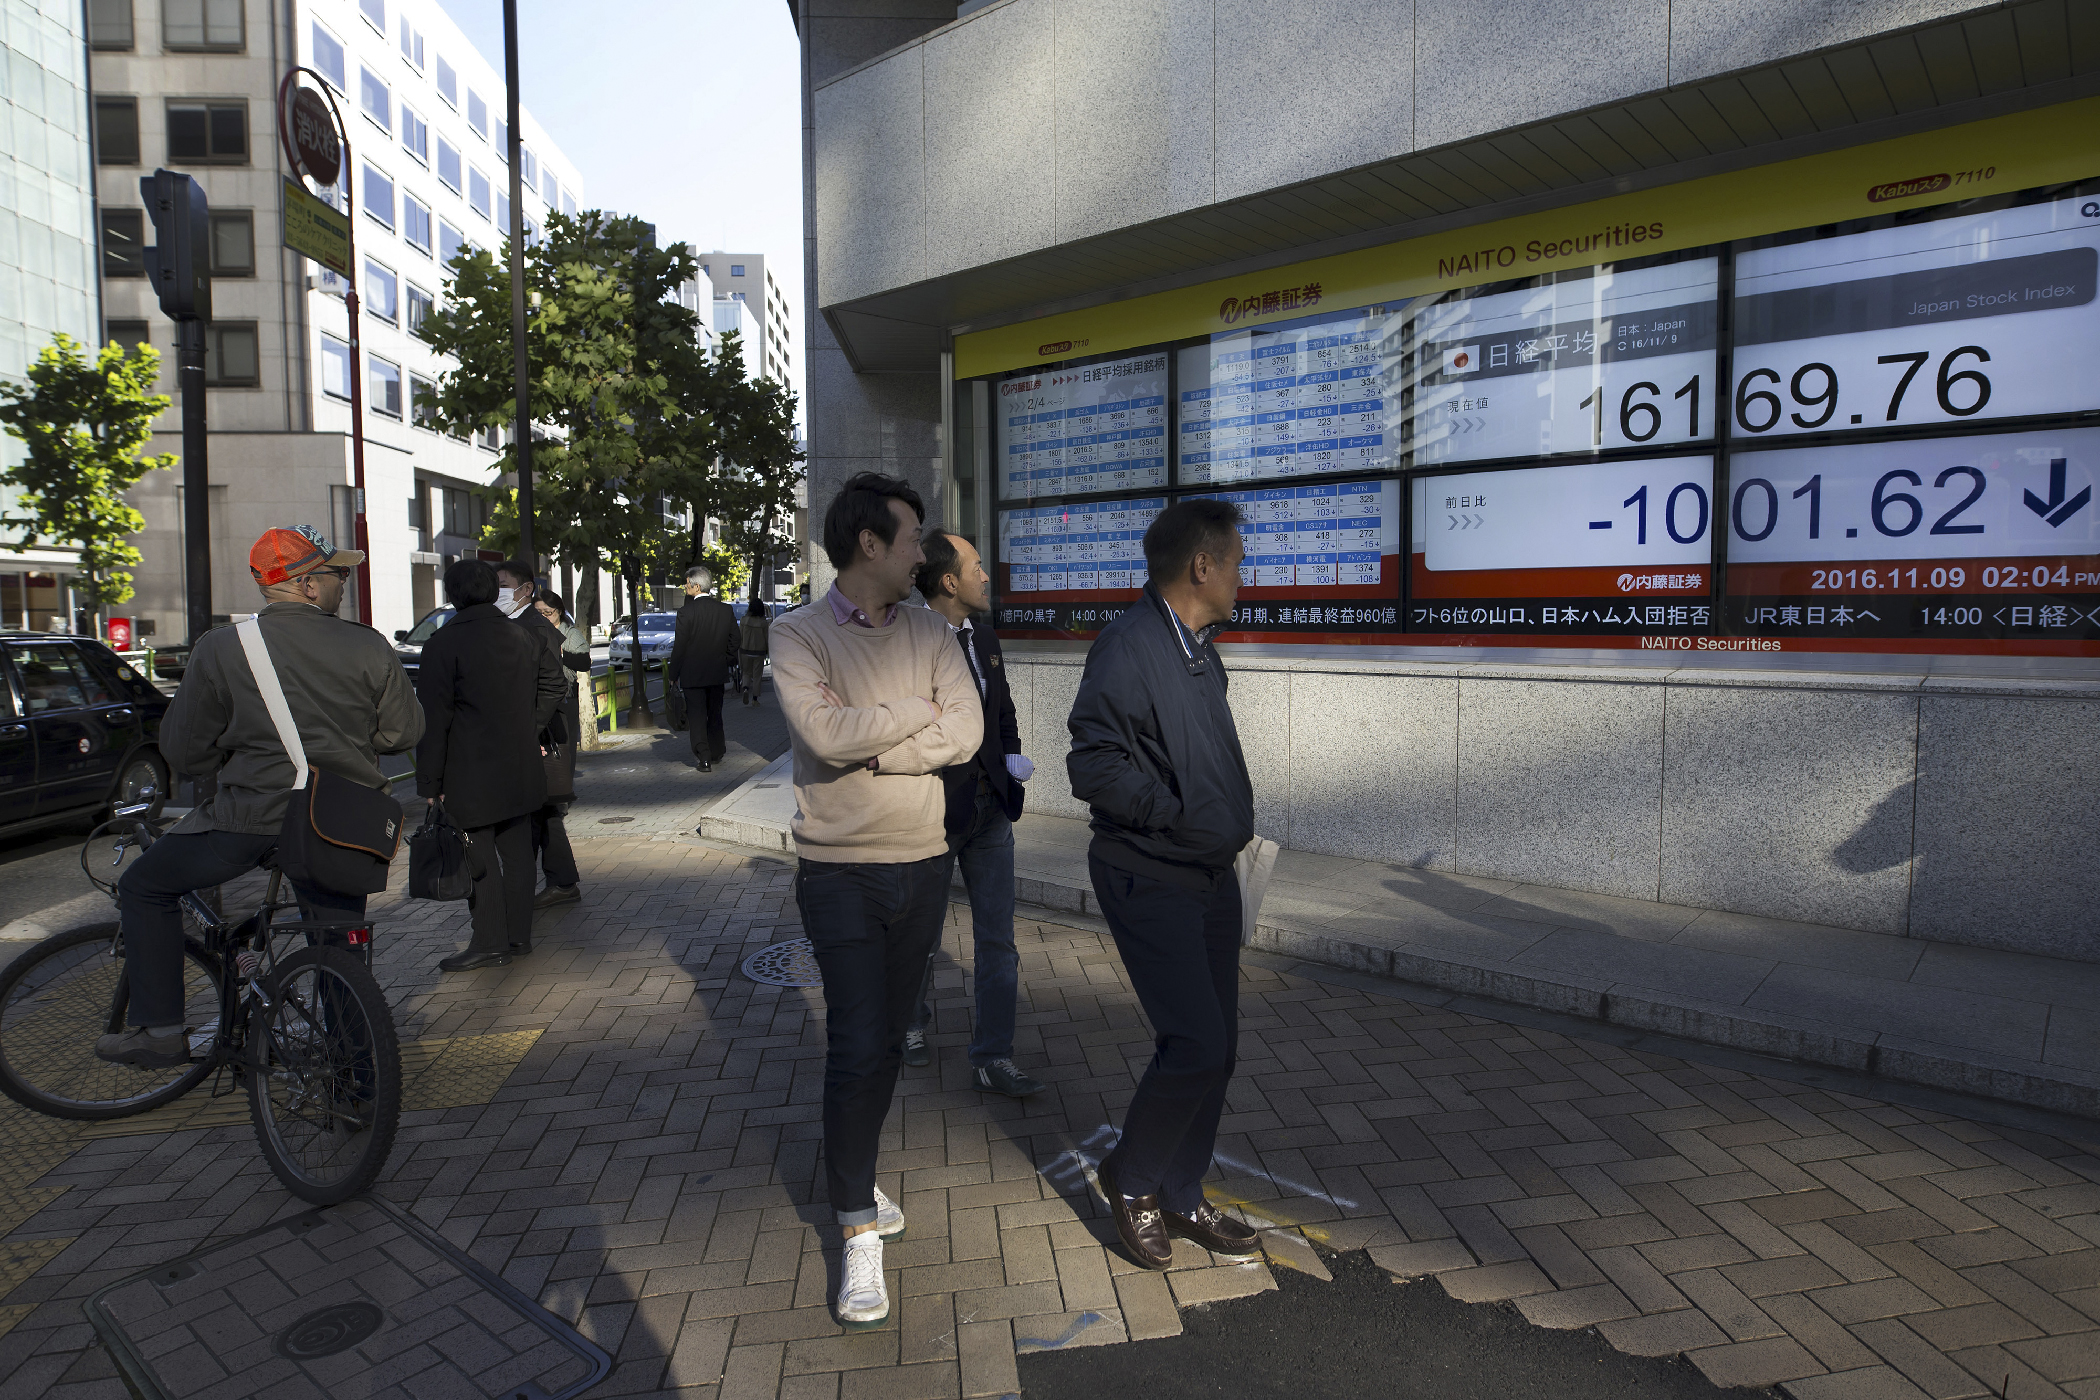 Pedestrians look at an electronic stock board displaying the Nikkei Stock Average outside a securities firm in Tokyo on Nov. 9, 2016. The yen strengthened against the U.S. dollar, which will make it more difficult for Japan to fight off its ongoing inflation problem.